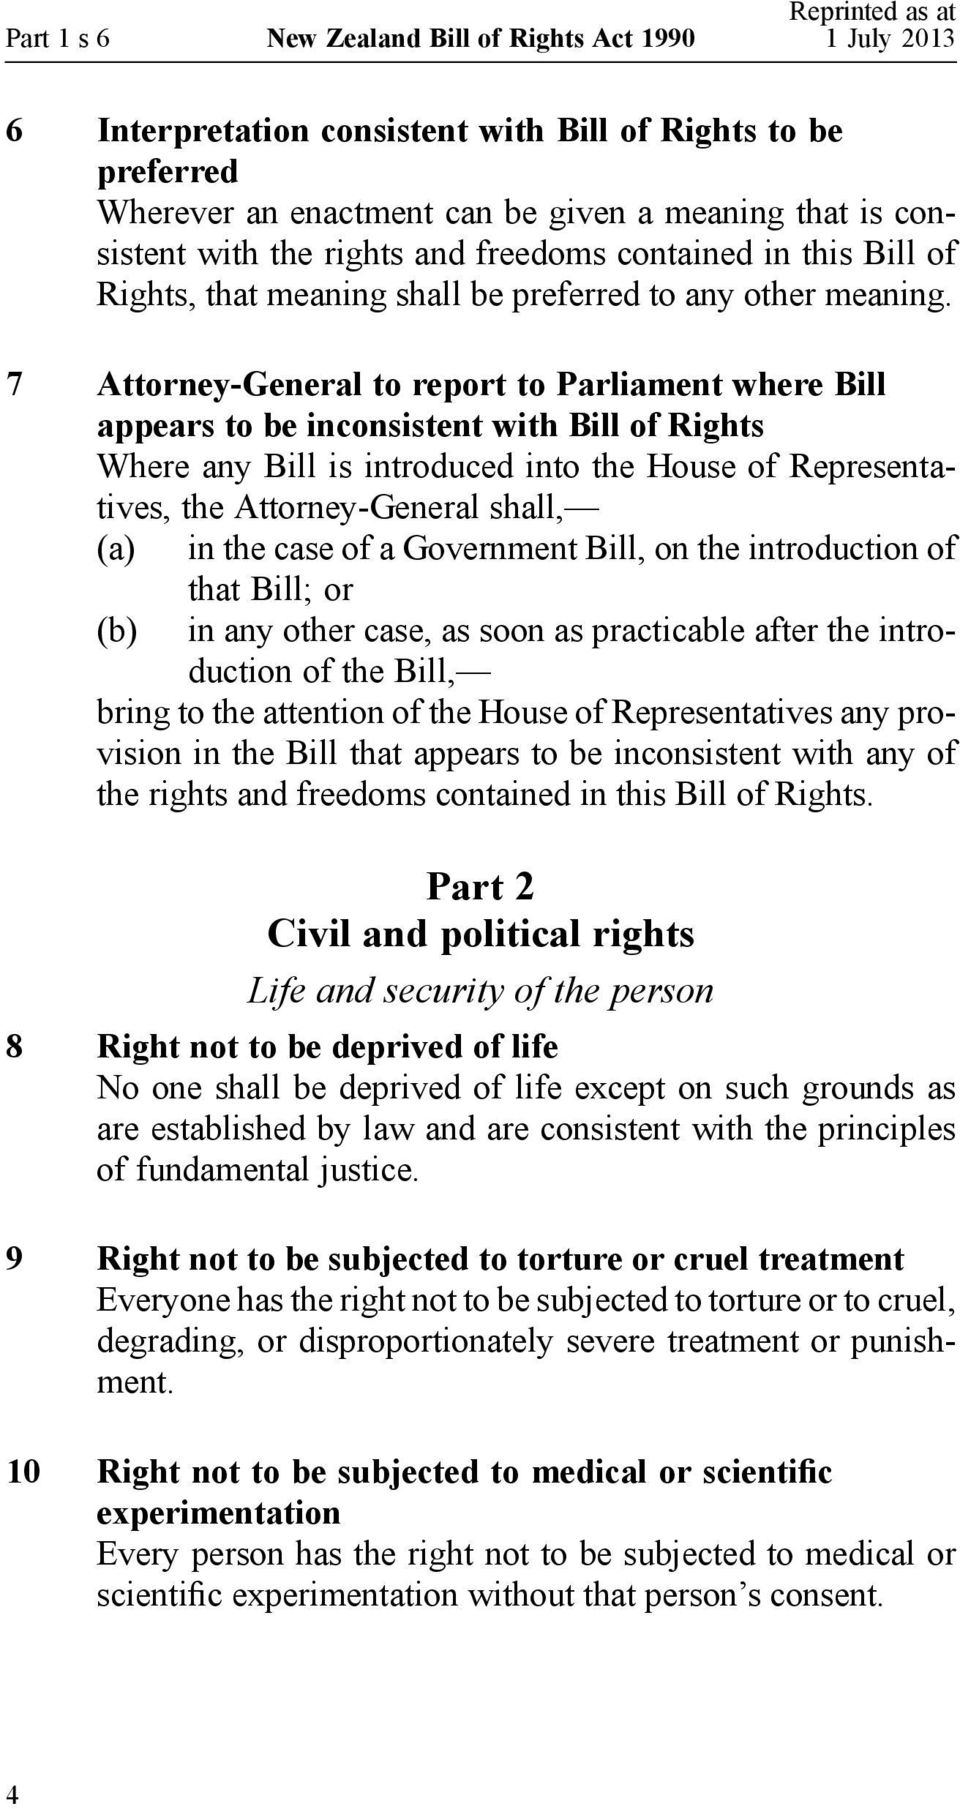 7 Attorney-General to report to Parliament where Bill appears to be inconsistent with Bill of Rights Where any Bill is introduced into the House of Representatives, the Attorney-General shall, (a) in